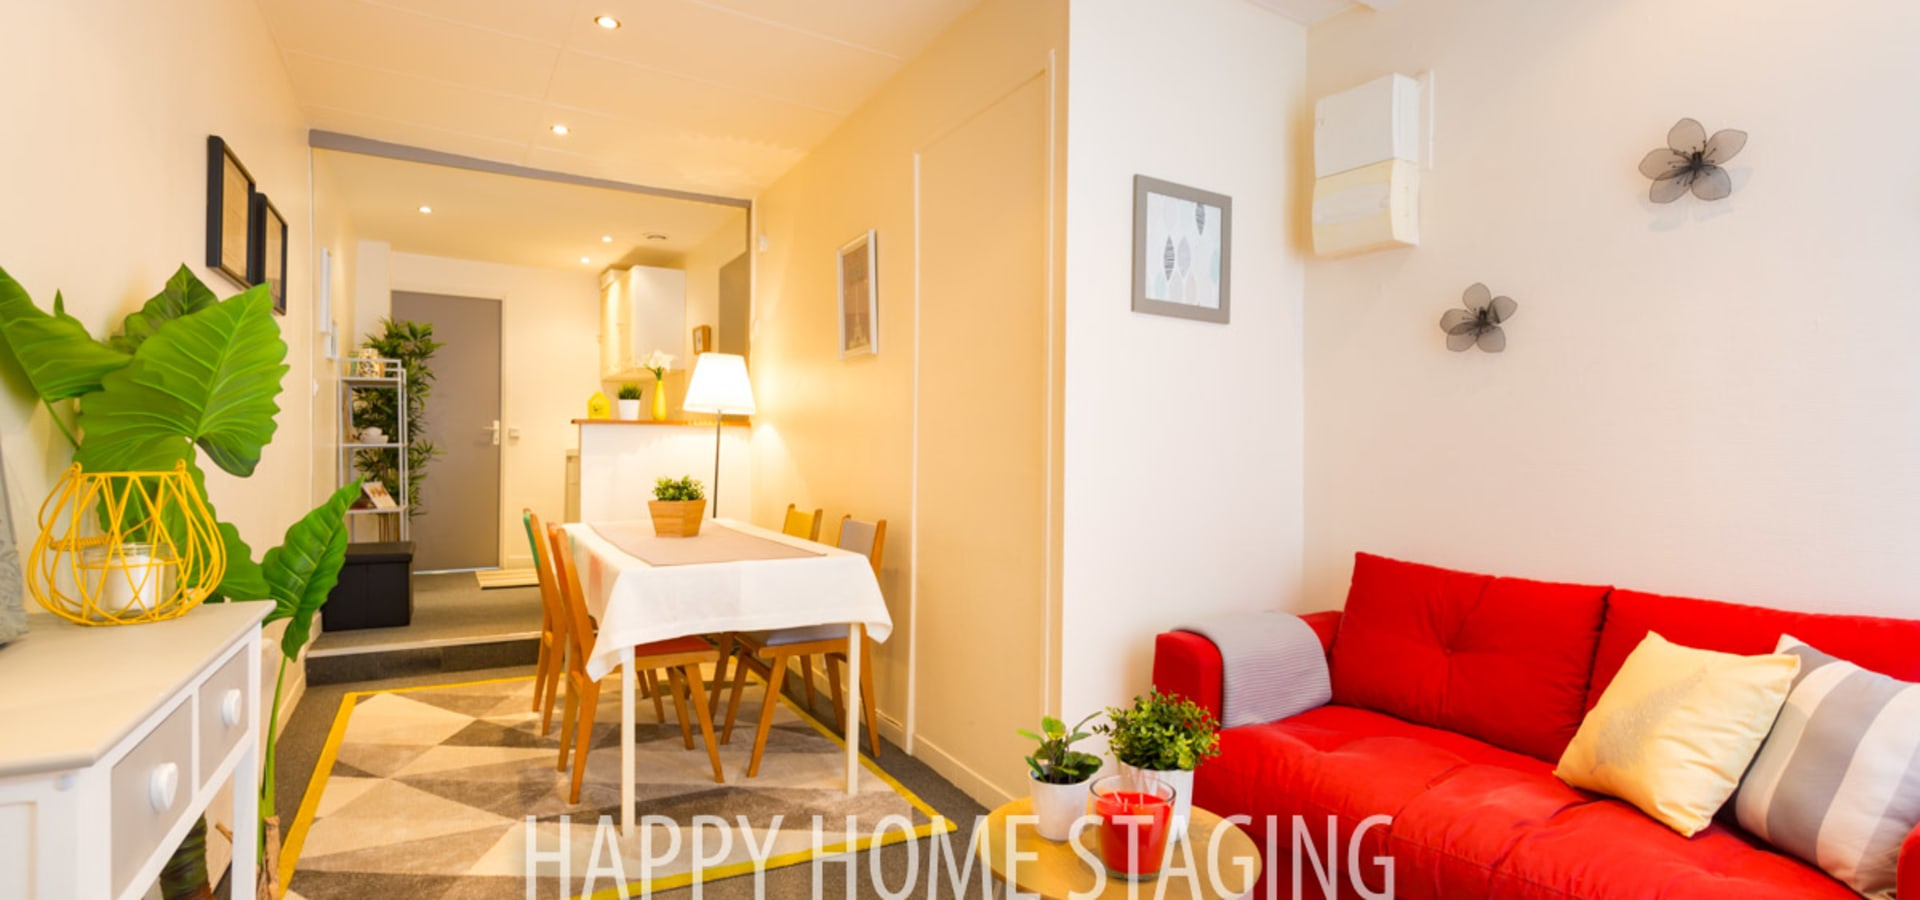 HAPPY HOME STAGING